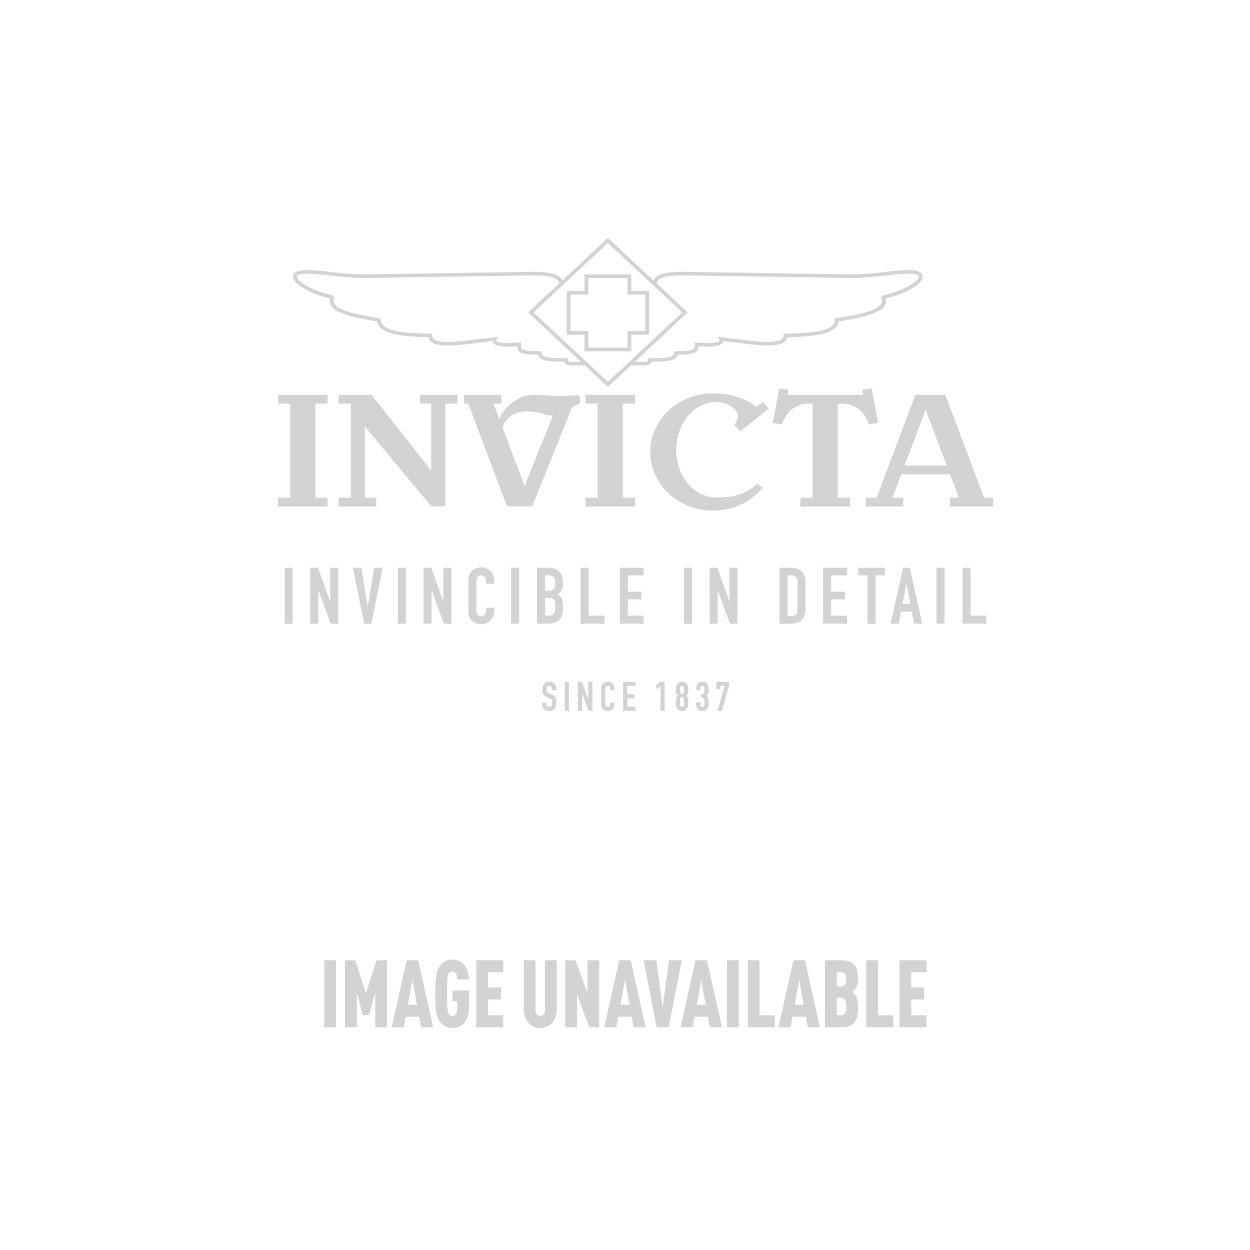 Invicta 20cm Women's Bracelets in Yellow Gold - Model J0260